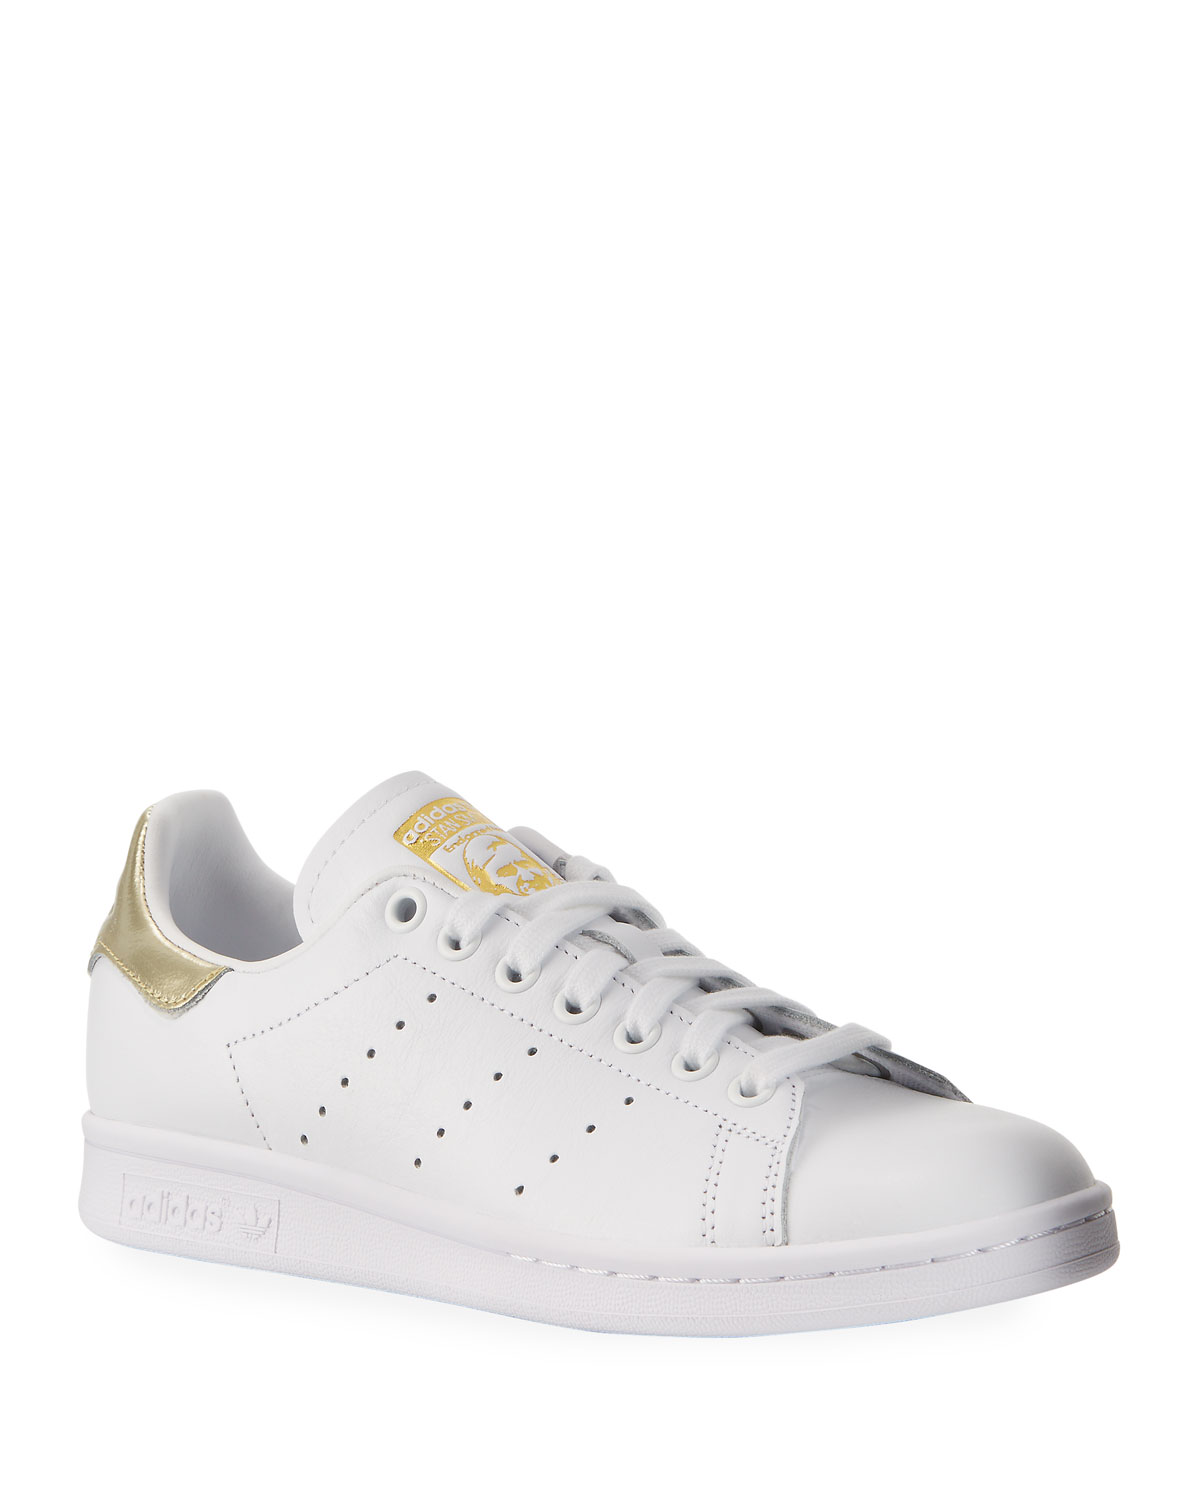 Classic Stan Smith Tennis Sneakers